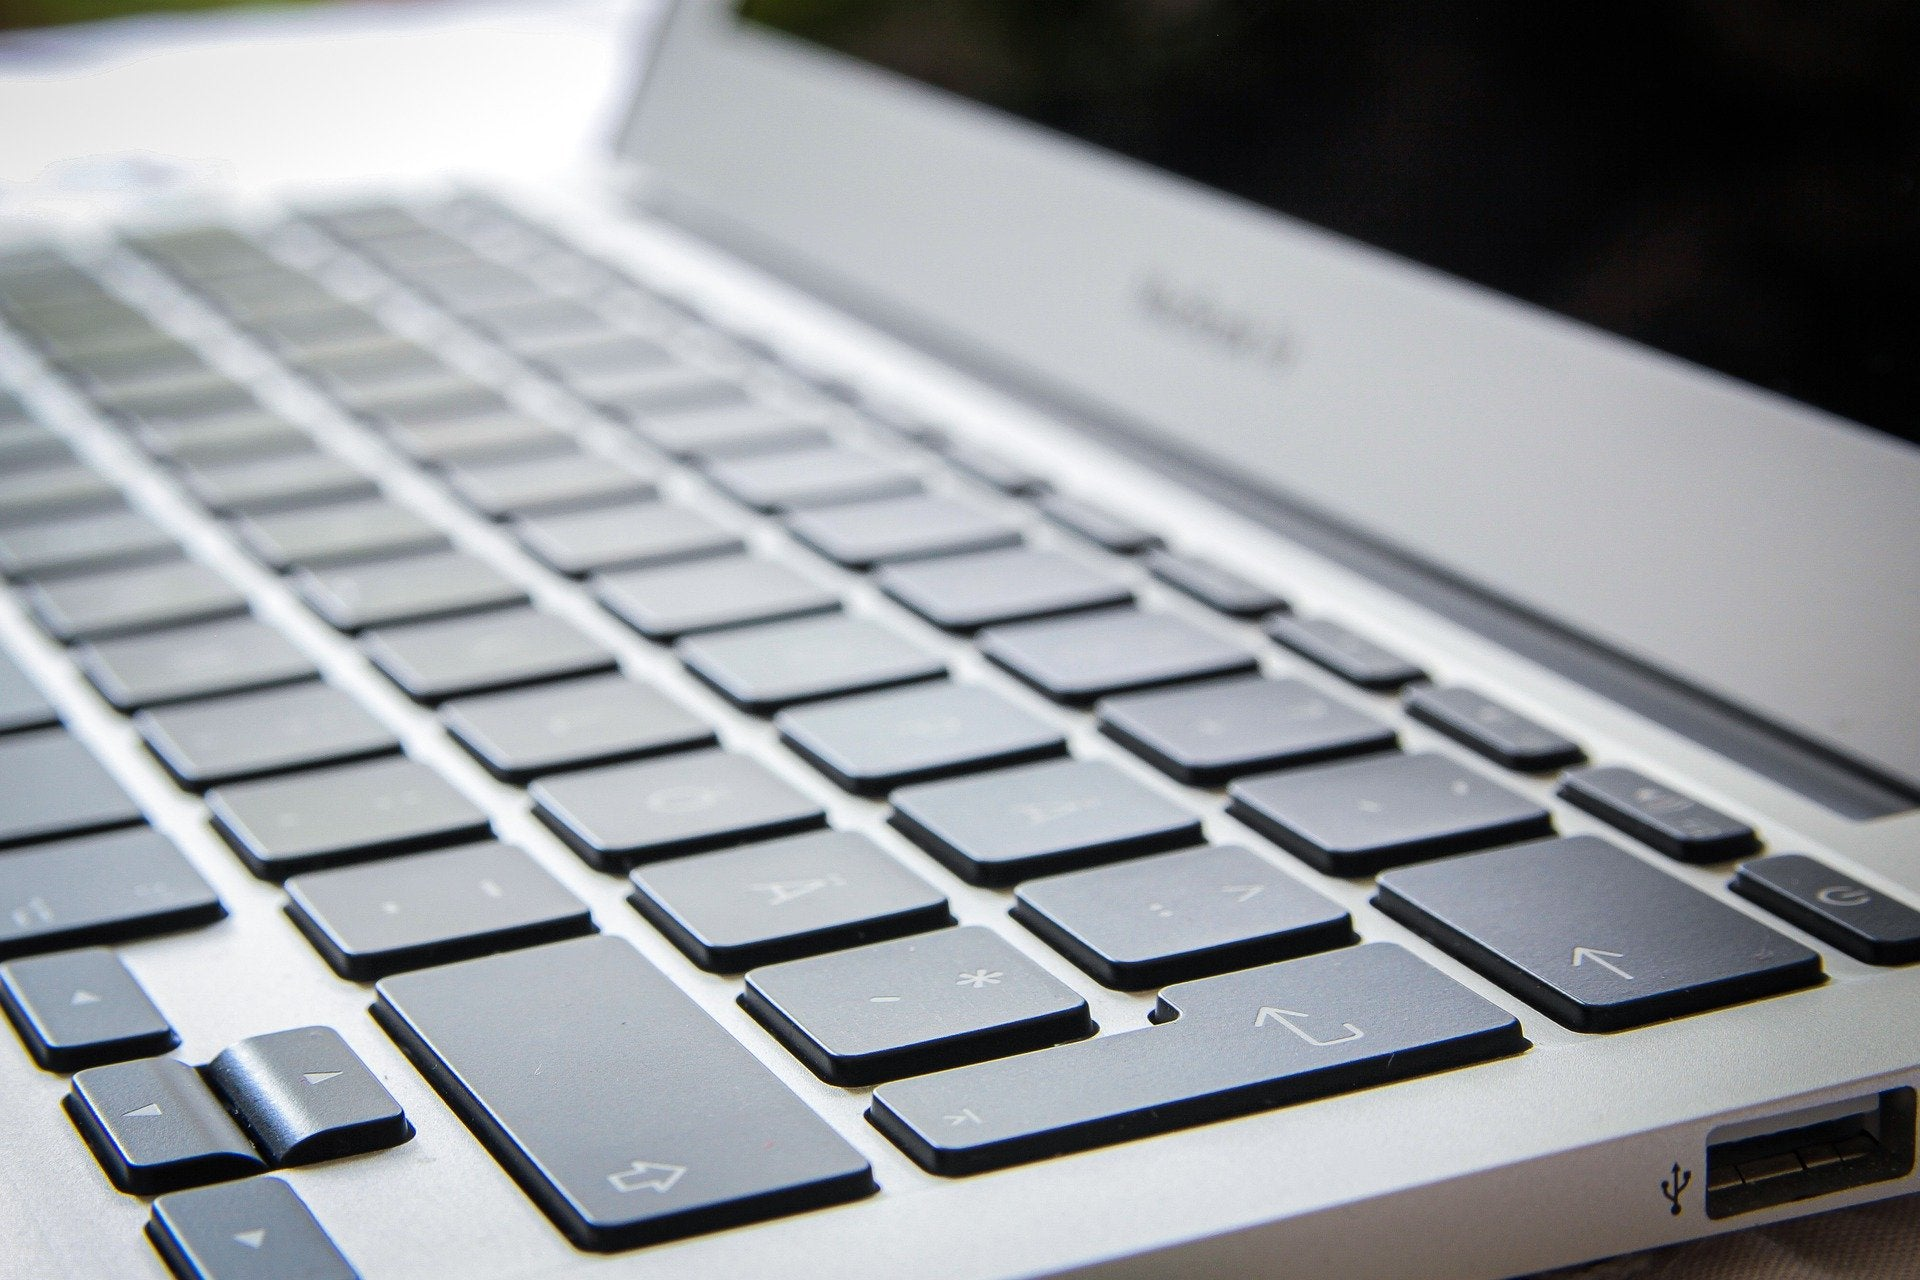 What do you most expect from Apple in 2020? Keyboard